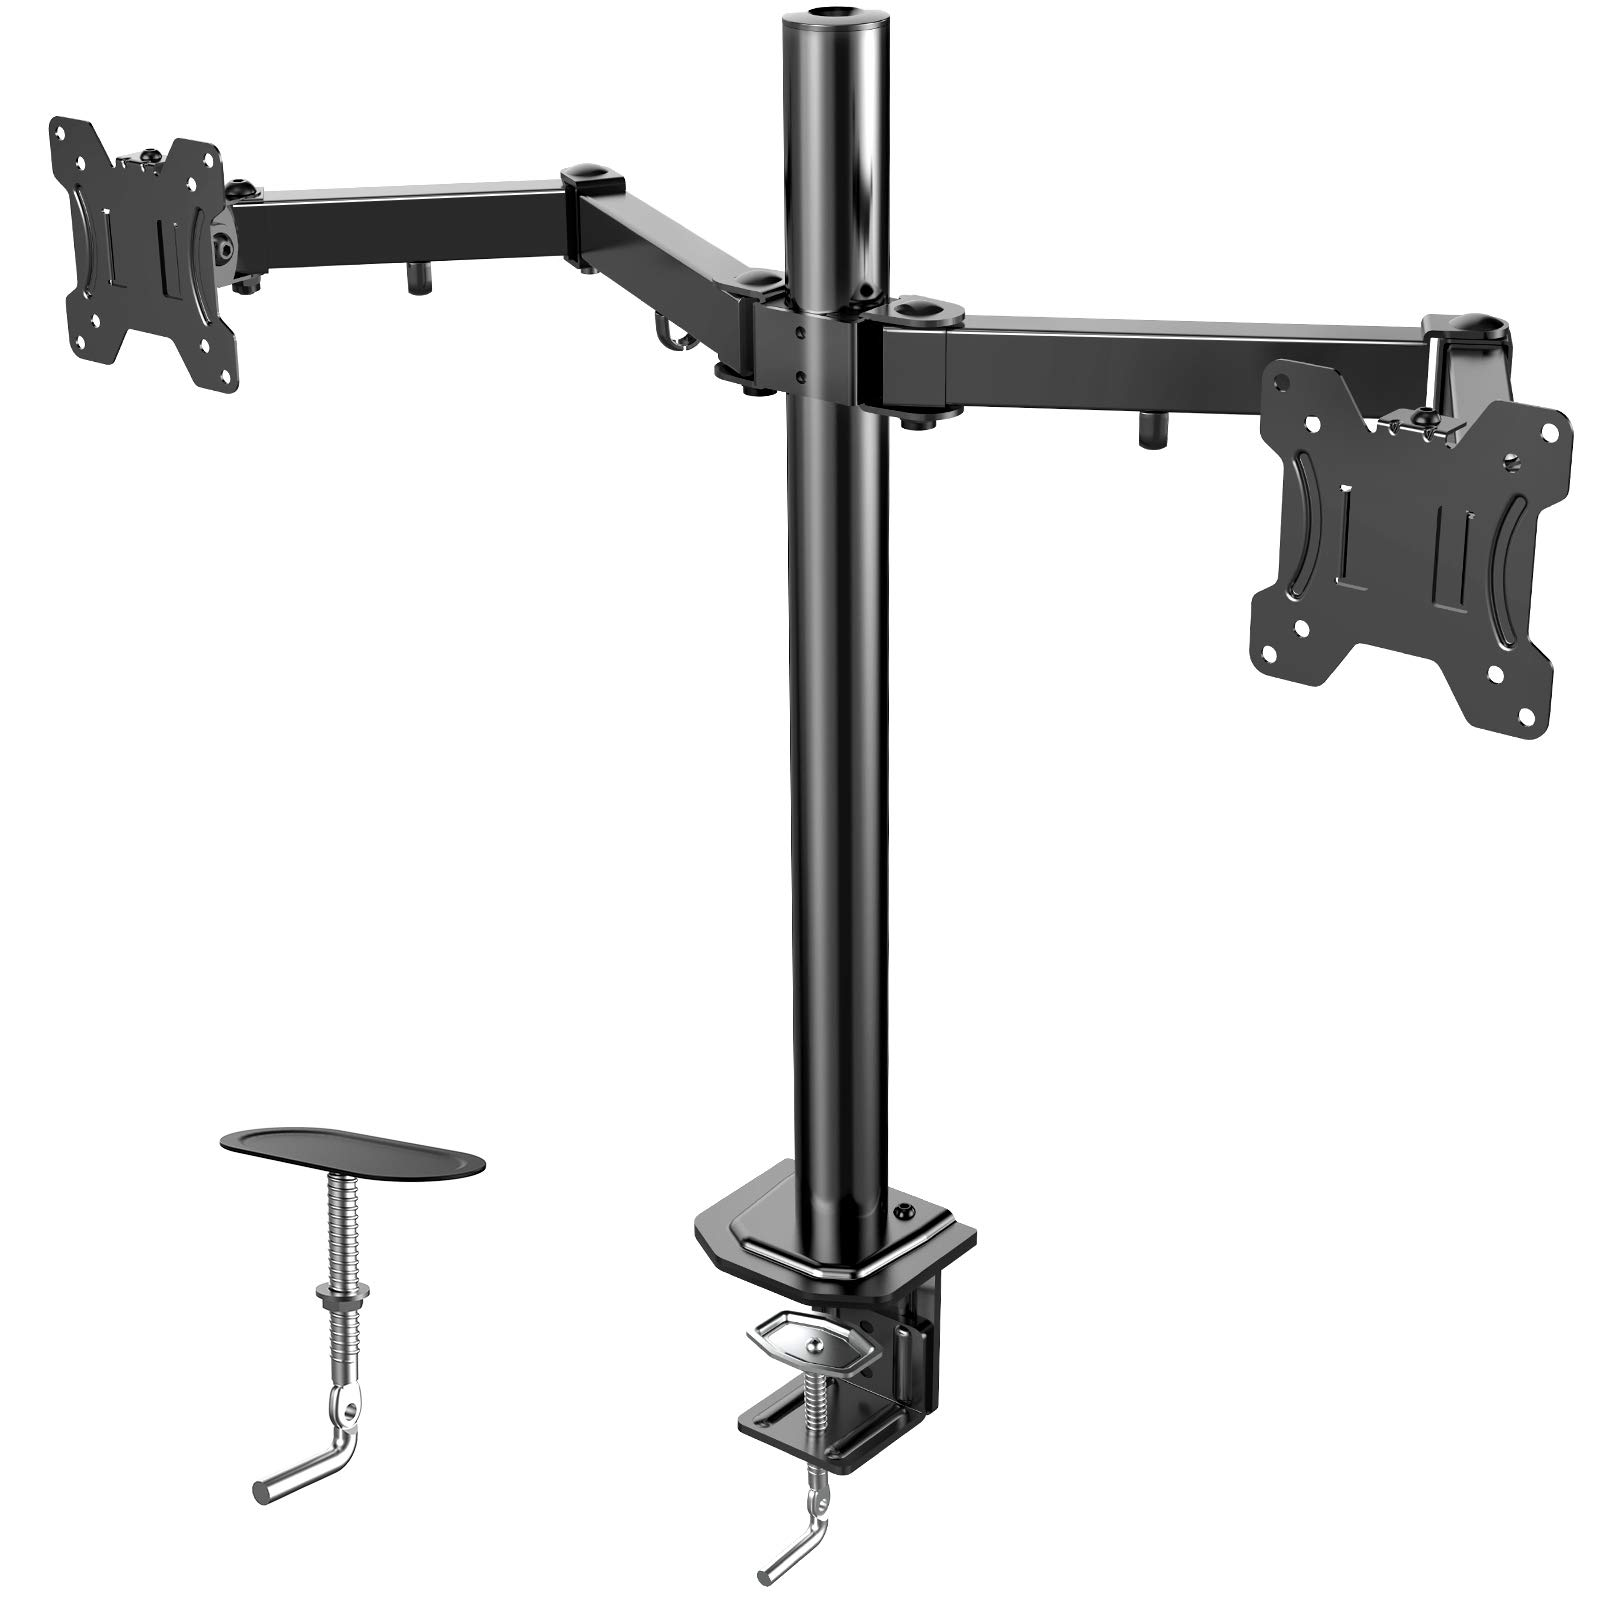 HUANUO Dual Monitor Stand, Fully Adjustable Monitor Arm for Double Curved Screens, VESA 75/100, 13-27 Inch Monitor Mount with C Clamp/Grommet Mounting